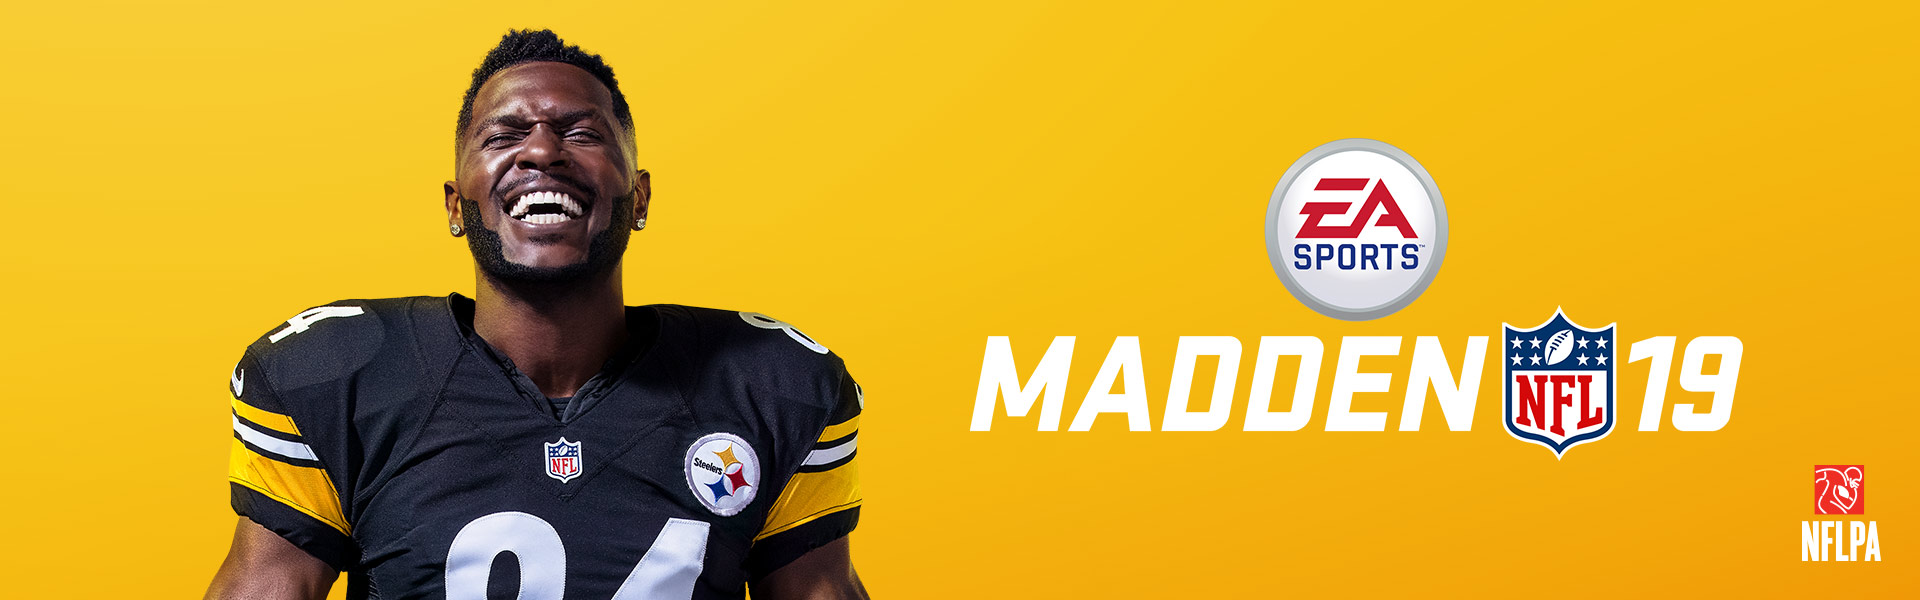 EA Sports Madden NFL 19, Antonio Brown joyeux et souriant